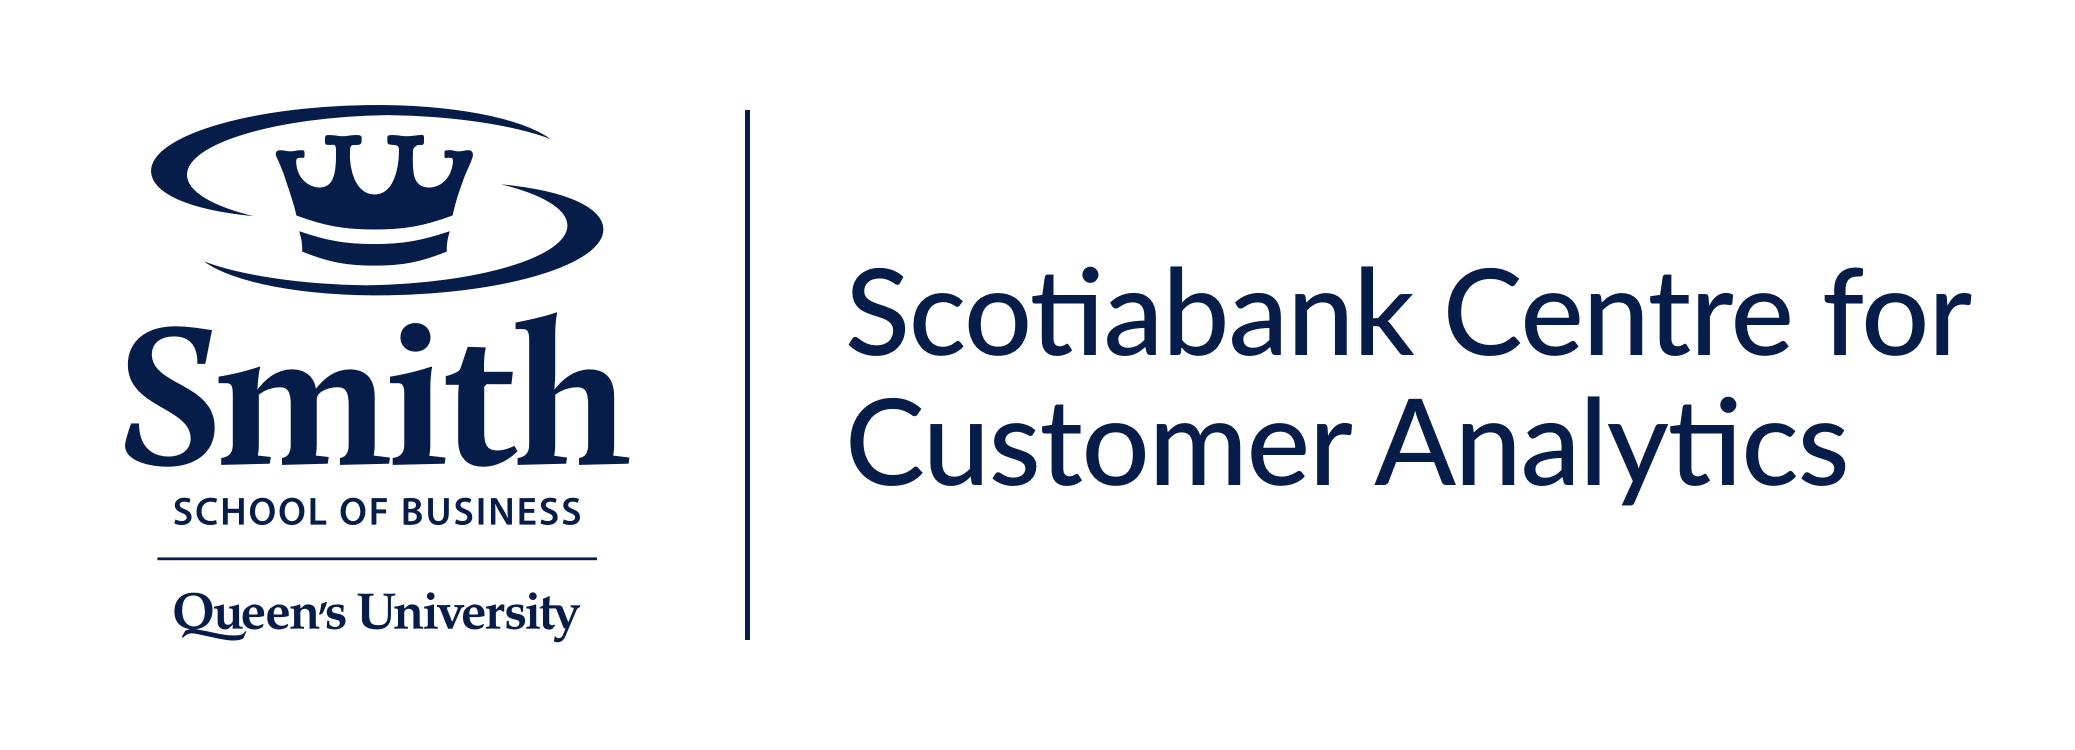 Scotiabank Centre for Customer Analytics